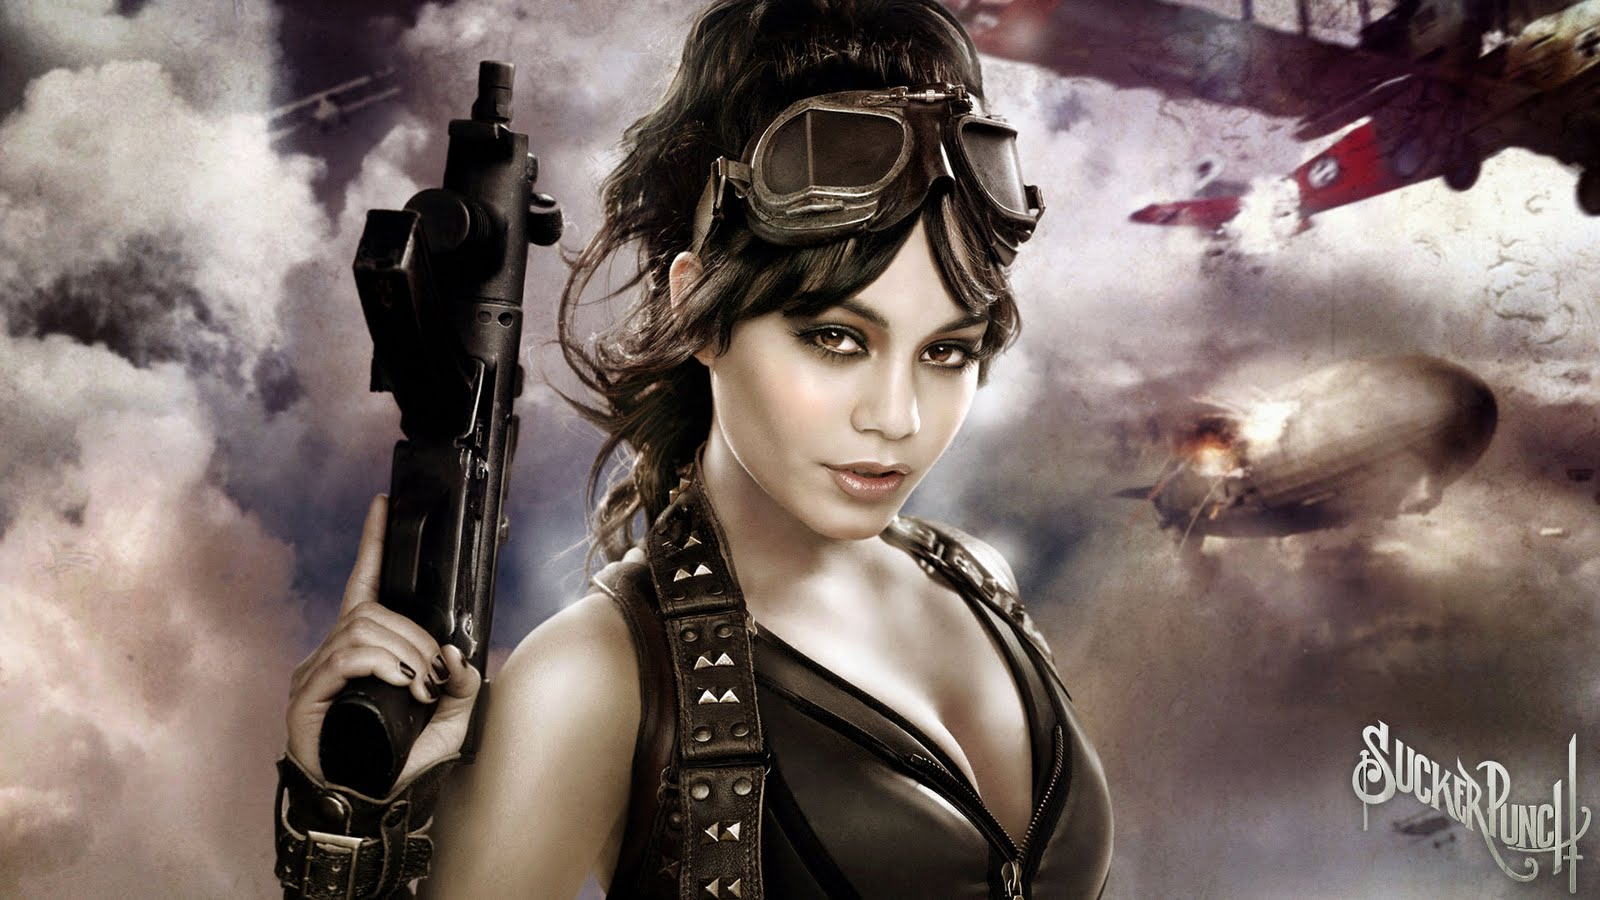 Women With Guns HD Hot Wallpapers| HD Wallpapers ...